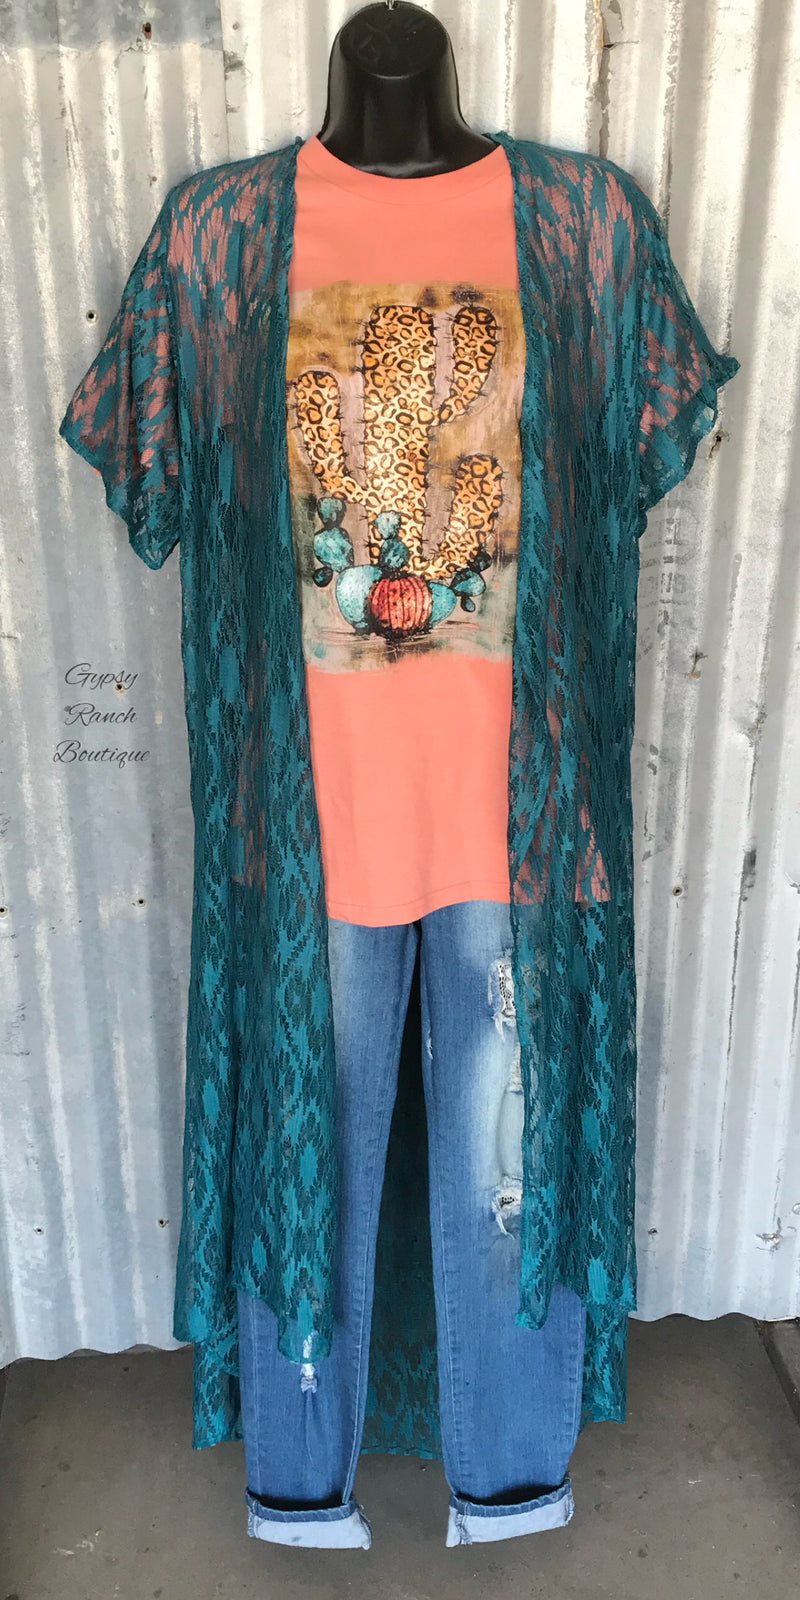 South Fork Aztec Teal Lace Kimono Cardigan - Also in Plus Size